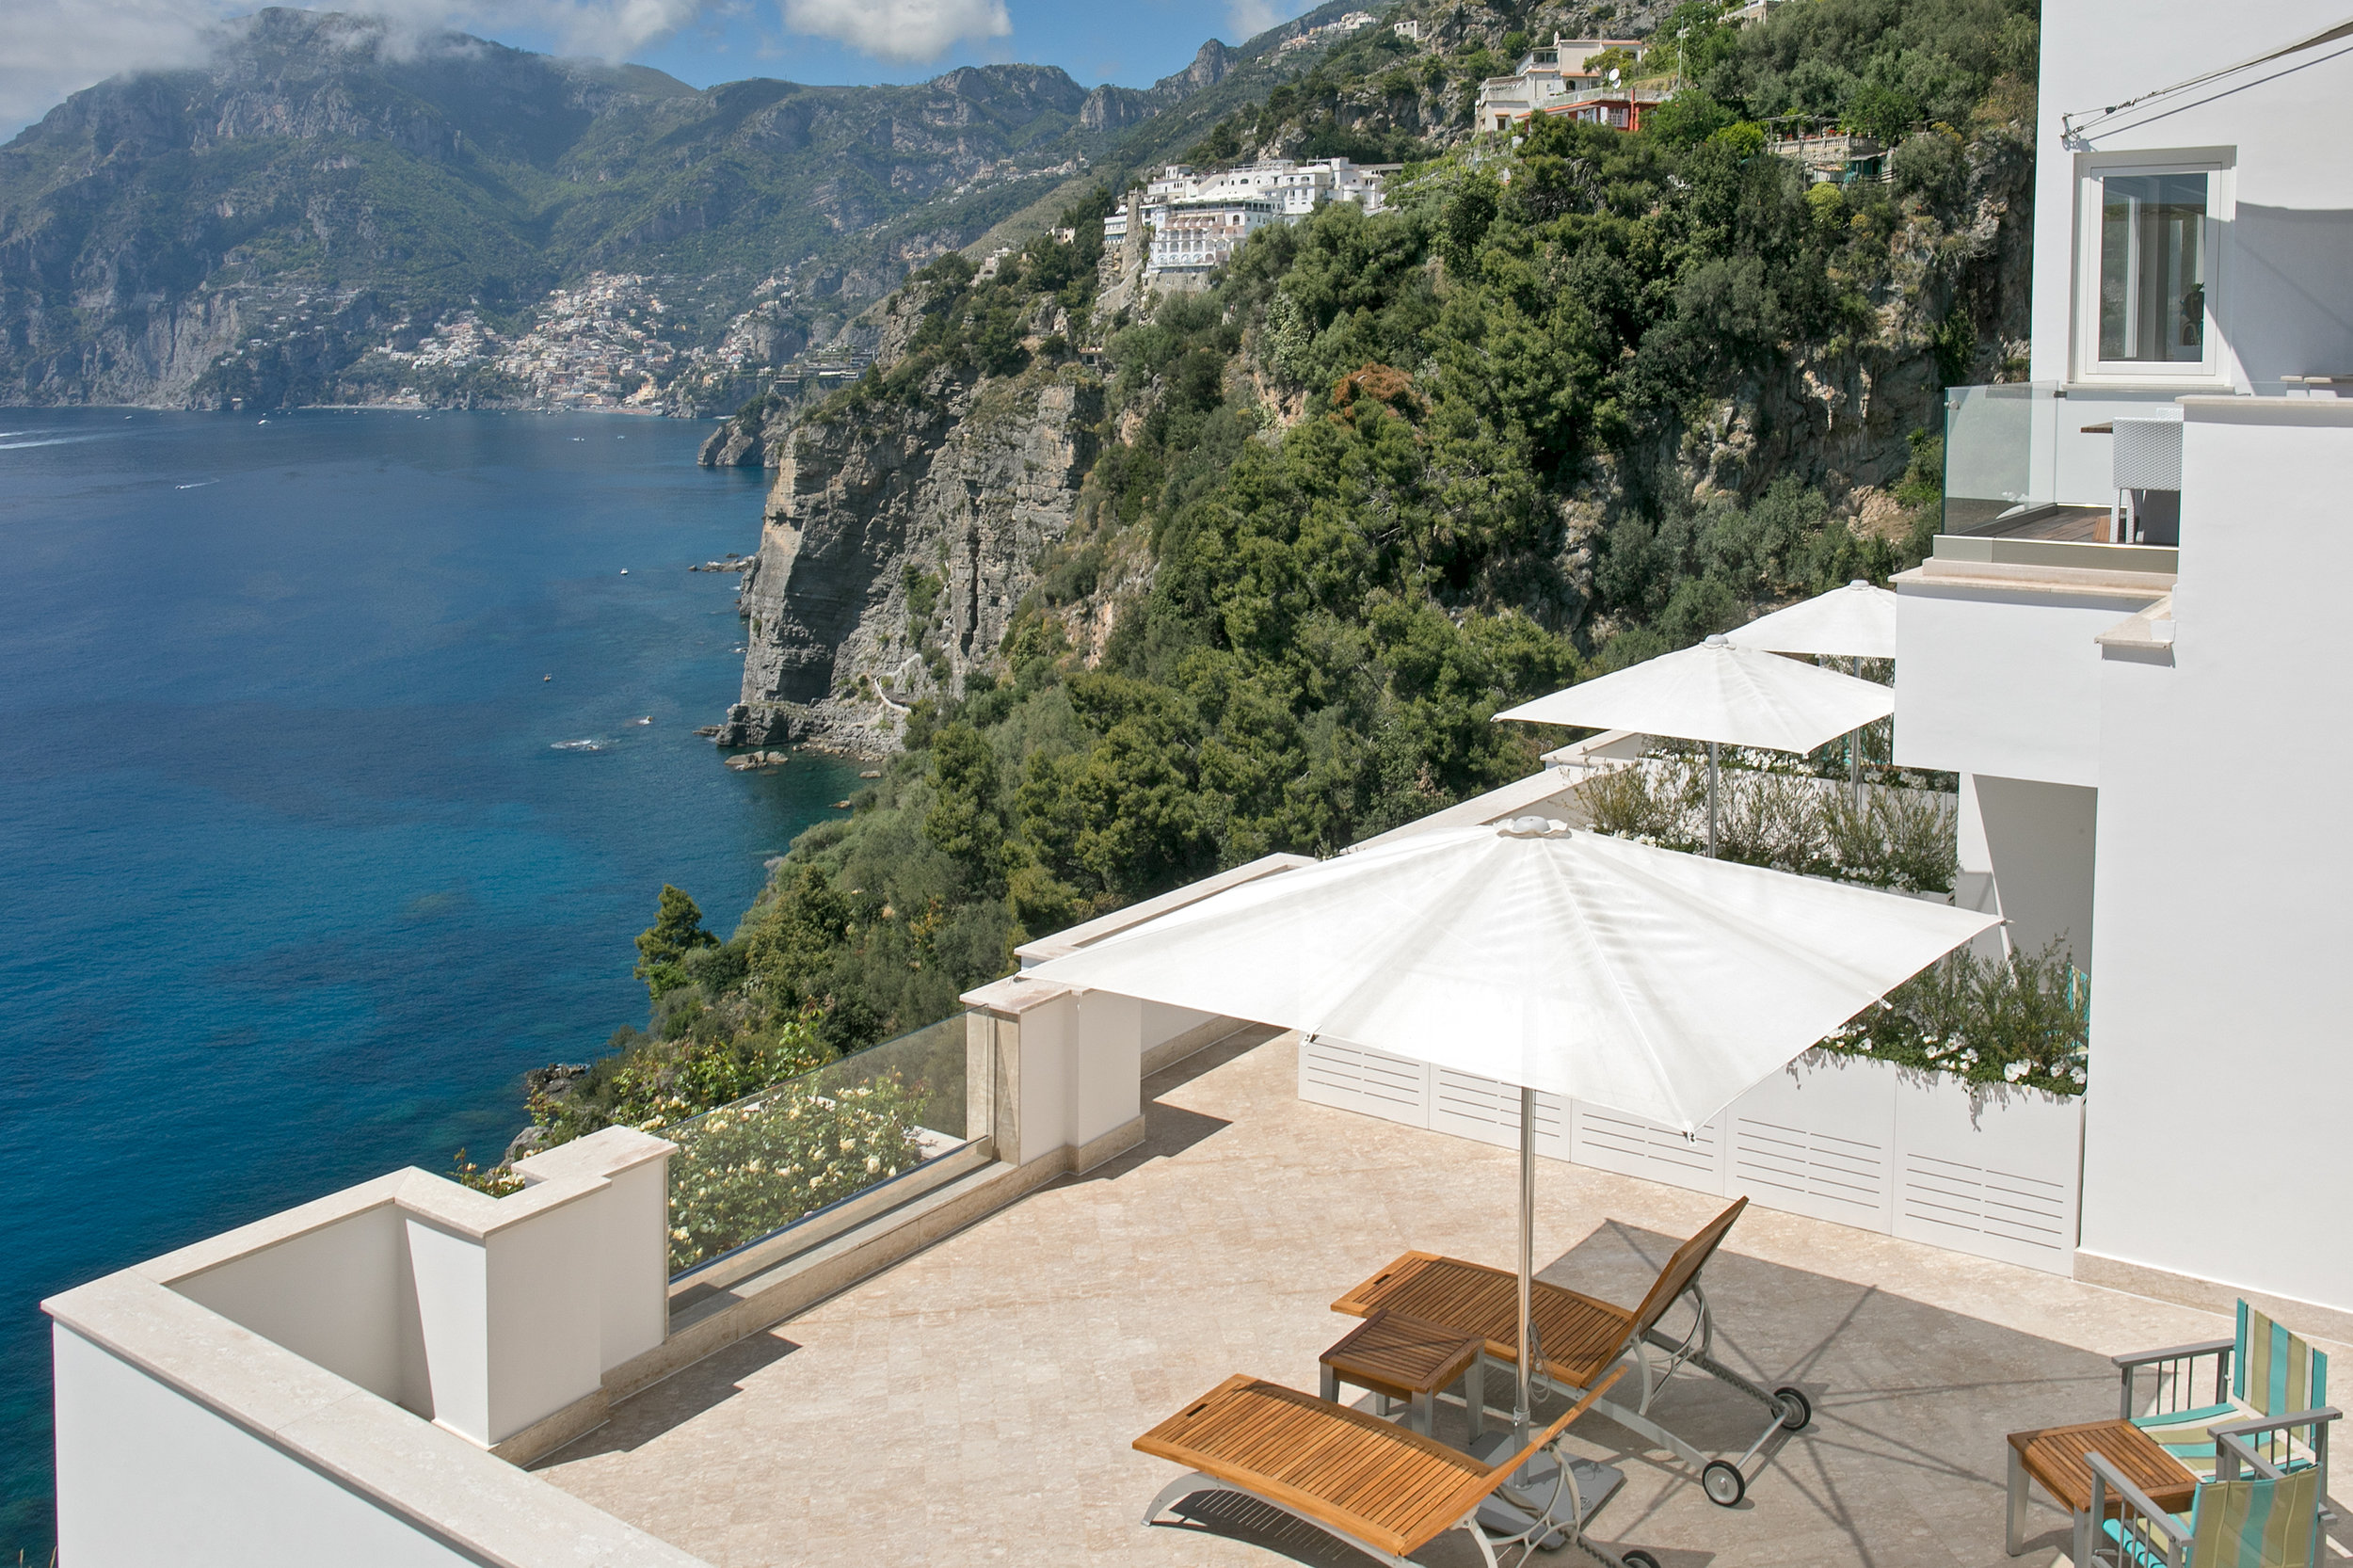 The all-white Casa Angelina nestled into the cliffs of the Amalfi Coast. All photos courtesy of Casa Angelina